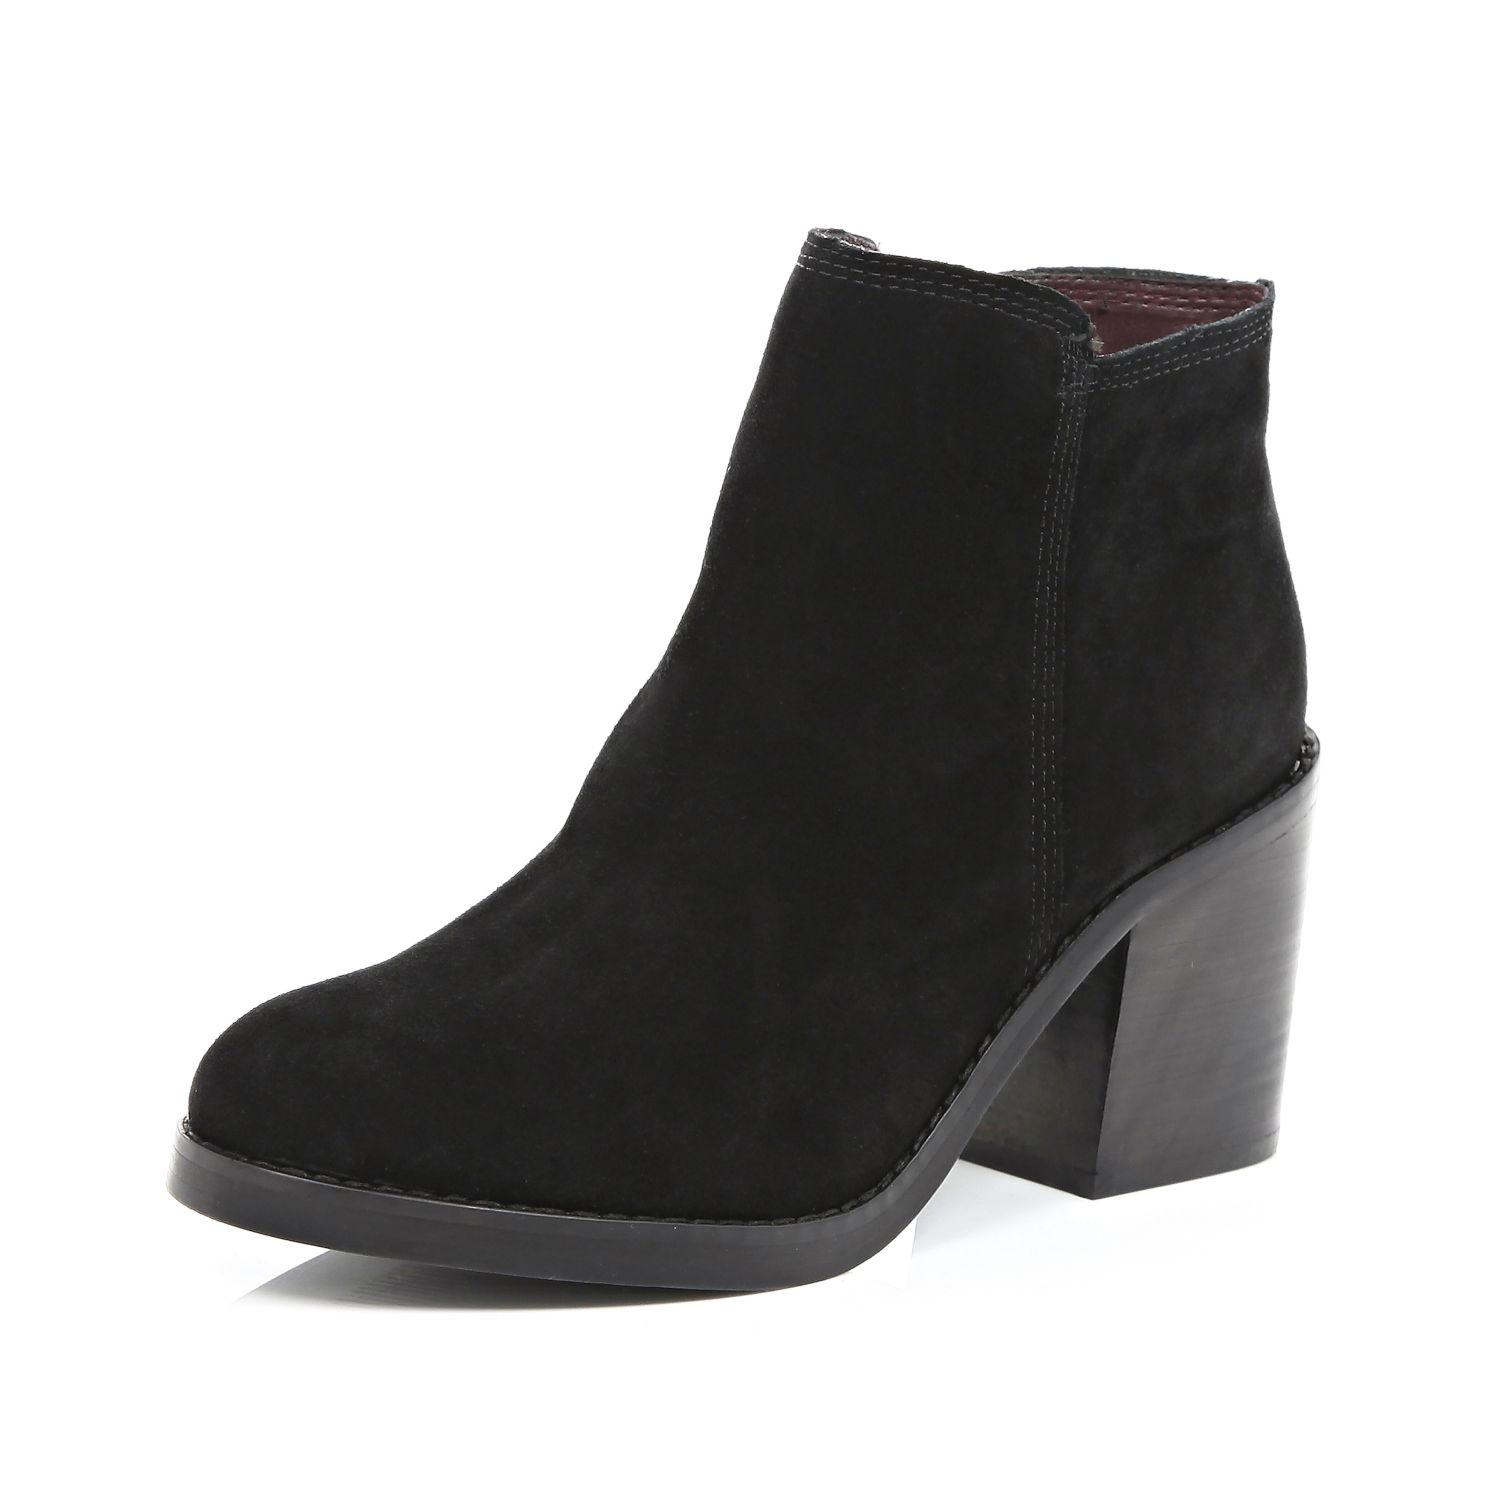 river island black suede block heel ankle boots in black